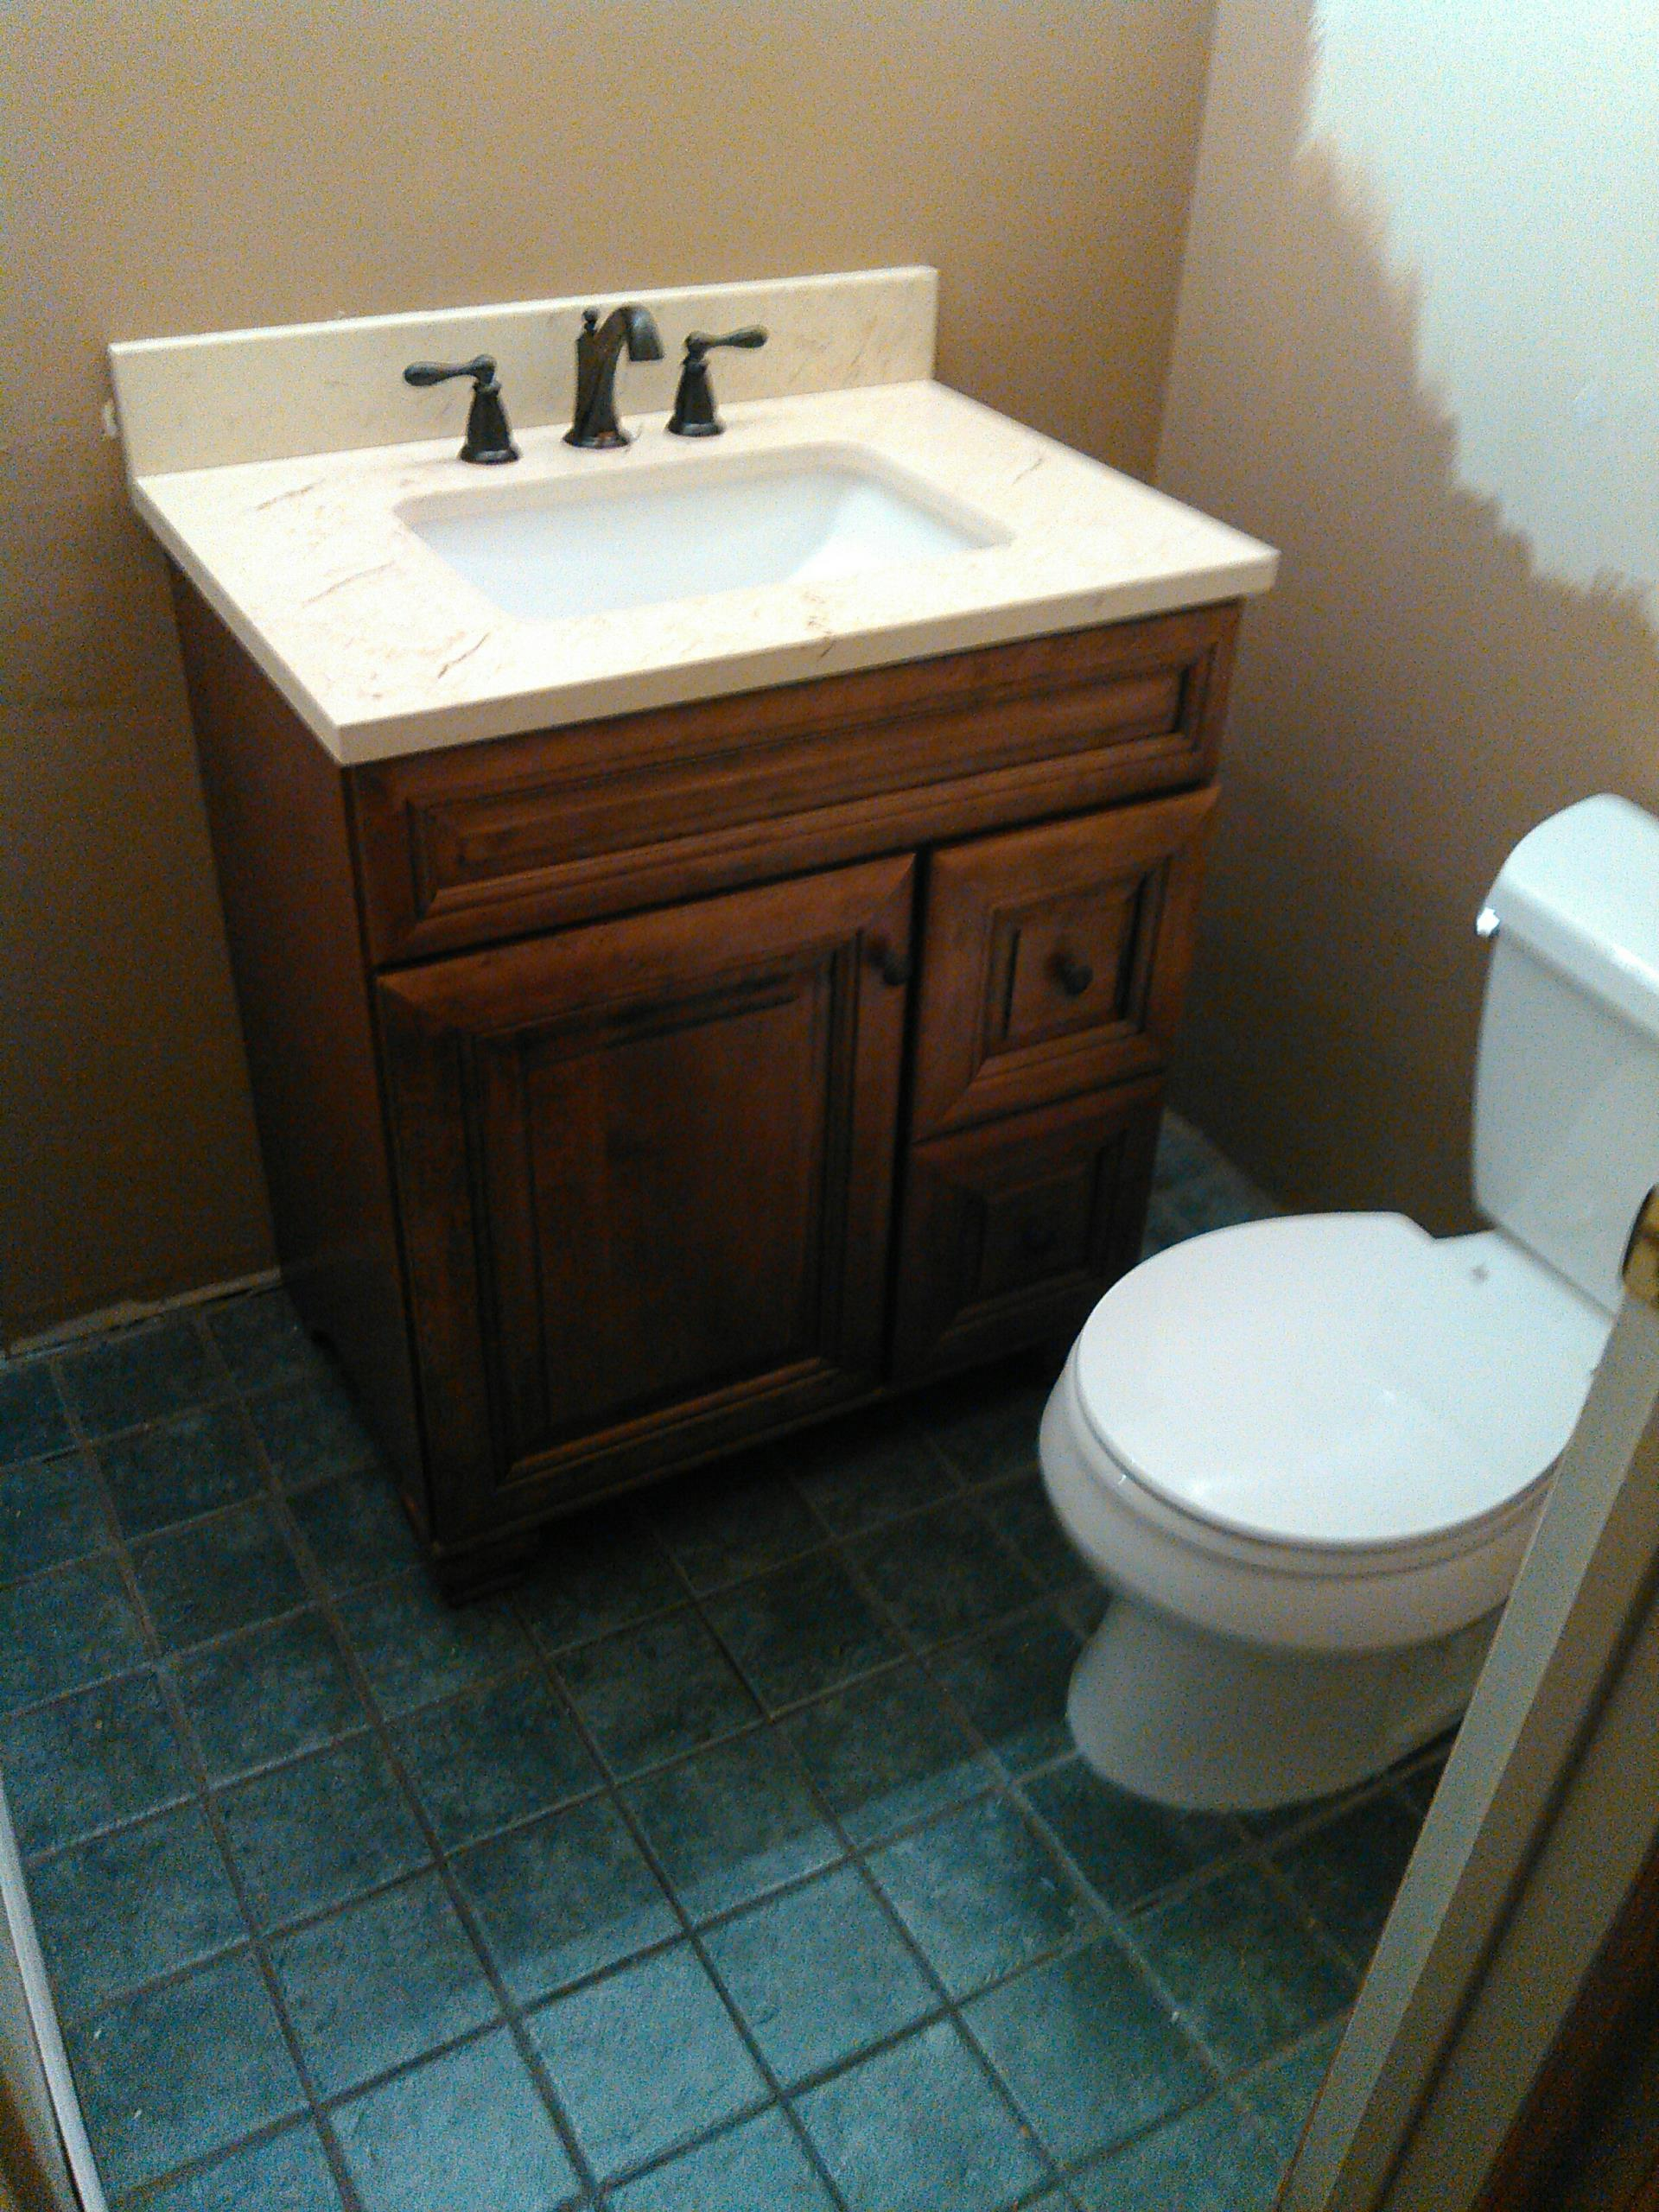 Amazing Chatsworth, CA   Install Owners Toilet And Pullman Cabinet With Faucet And  Sink Top.